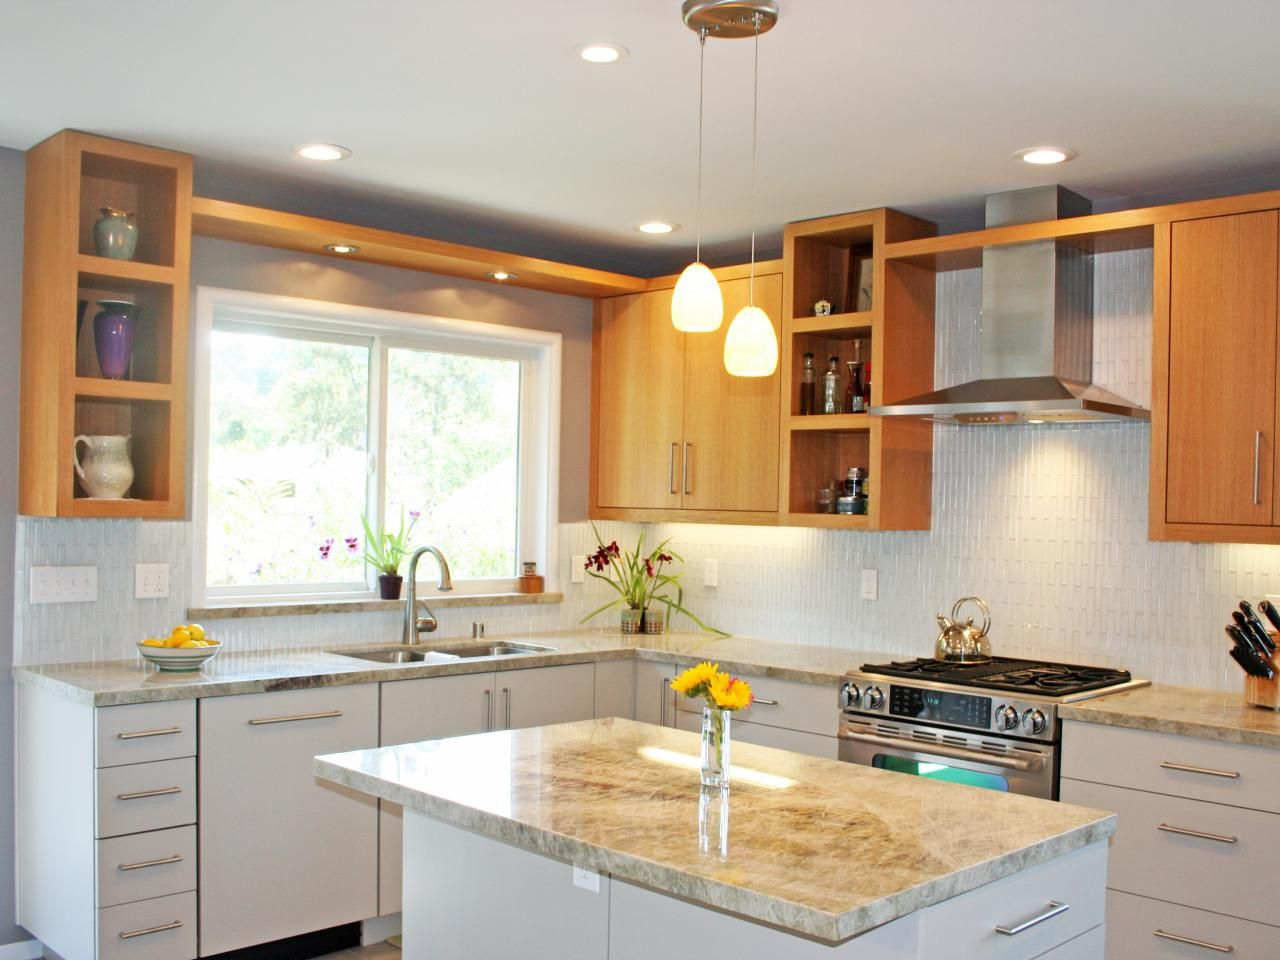 Kitchen Window Pictures The Best Options Styles & Ideas  Light Simple Contemporary Style Kitchen Cabinets Decorating Inspiration